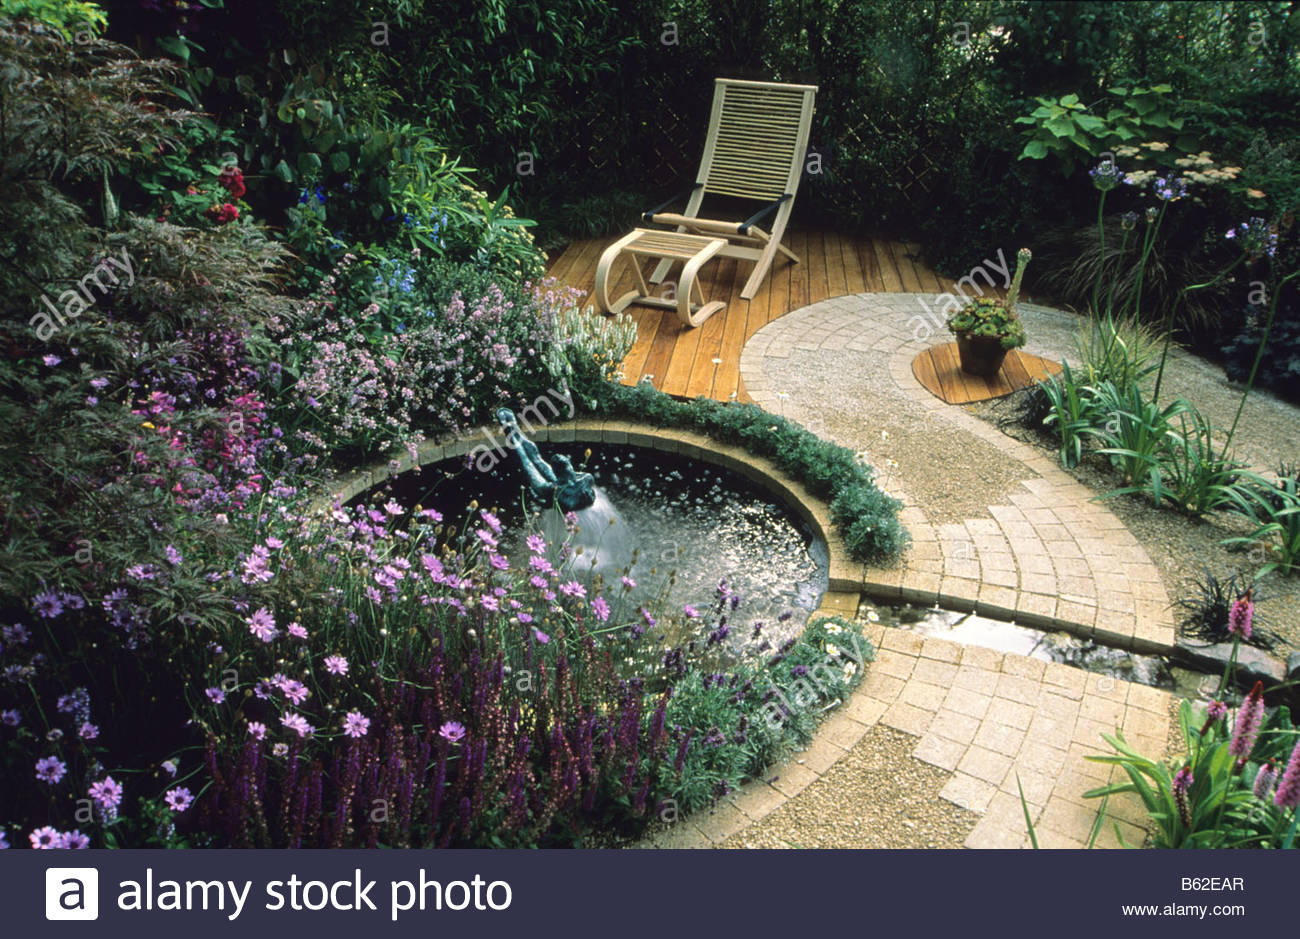 Feng Shui Garden Design Pamela Woods Circular Pool With Fountain Sculpture  Water Rill Meandering Cobblestone Path And Small Deck